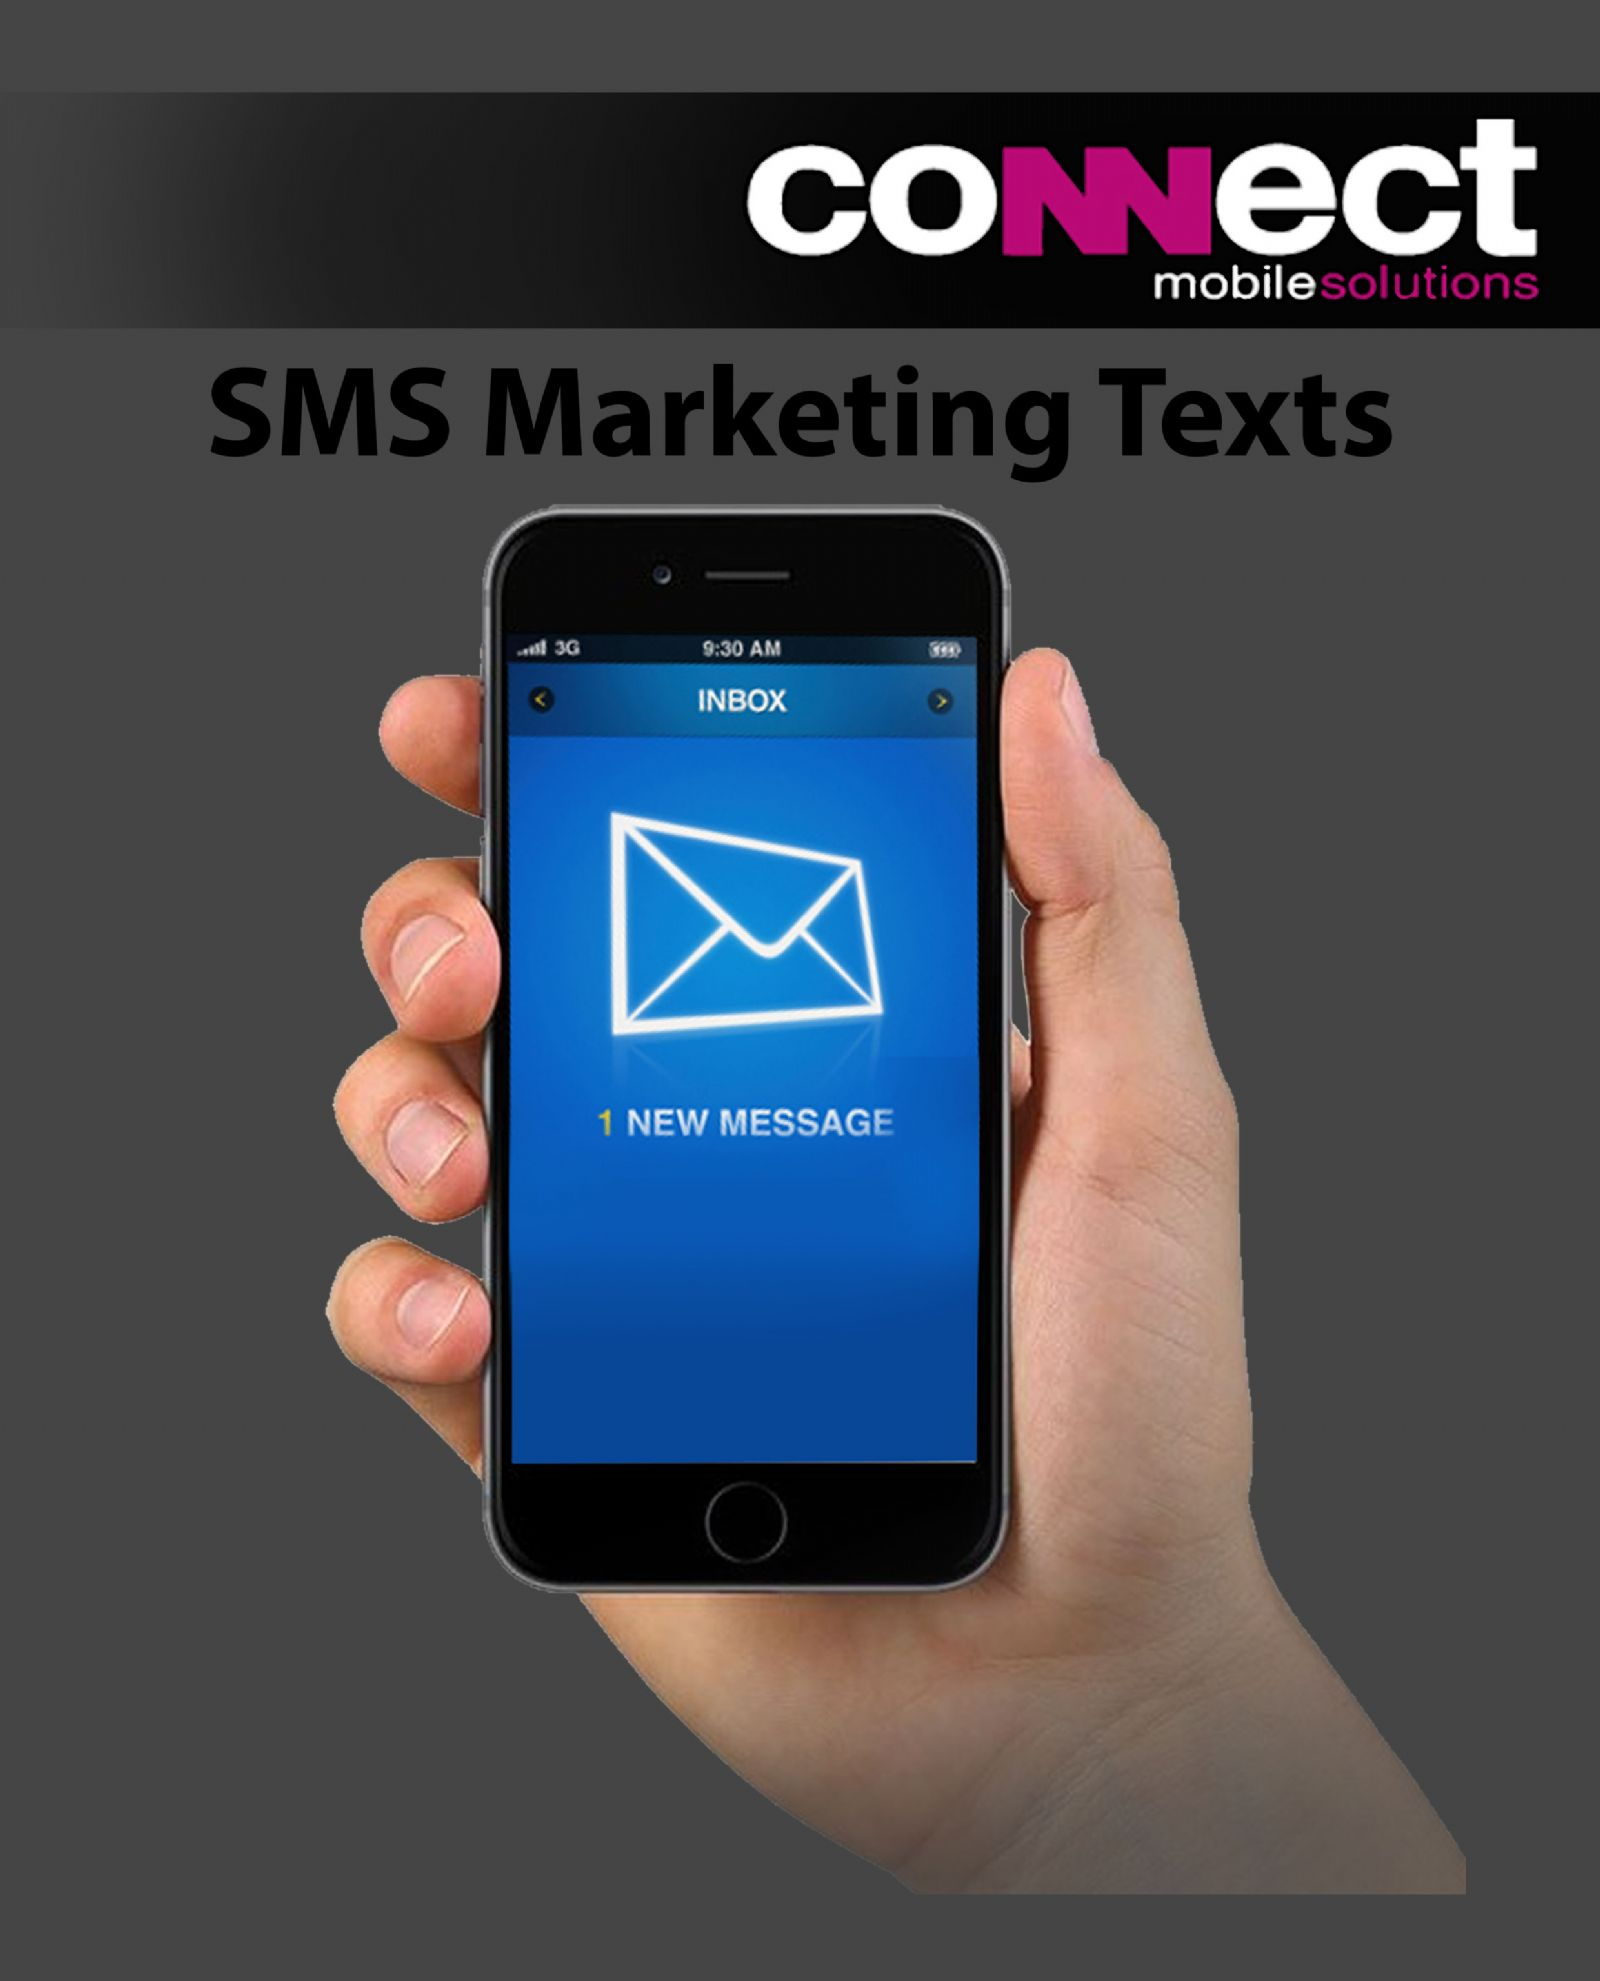 Benefits of SMS Text Marketing